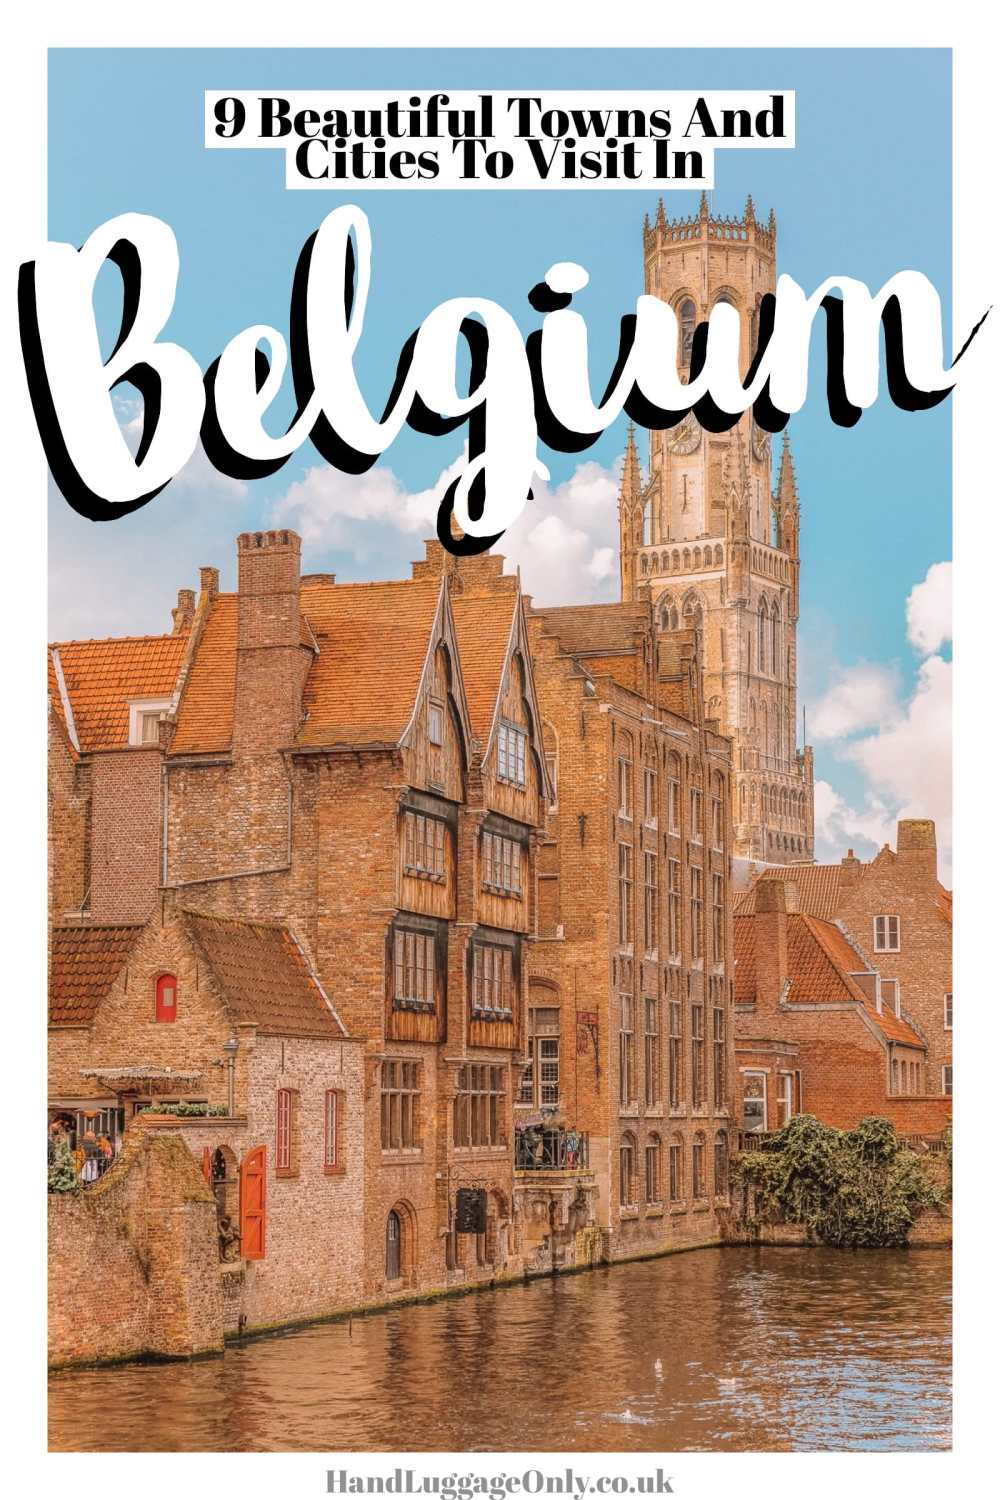 Town And Cities In Belgium To Visit (1)